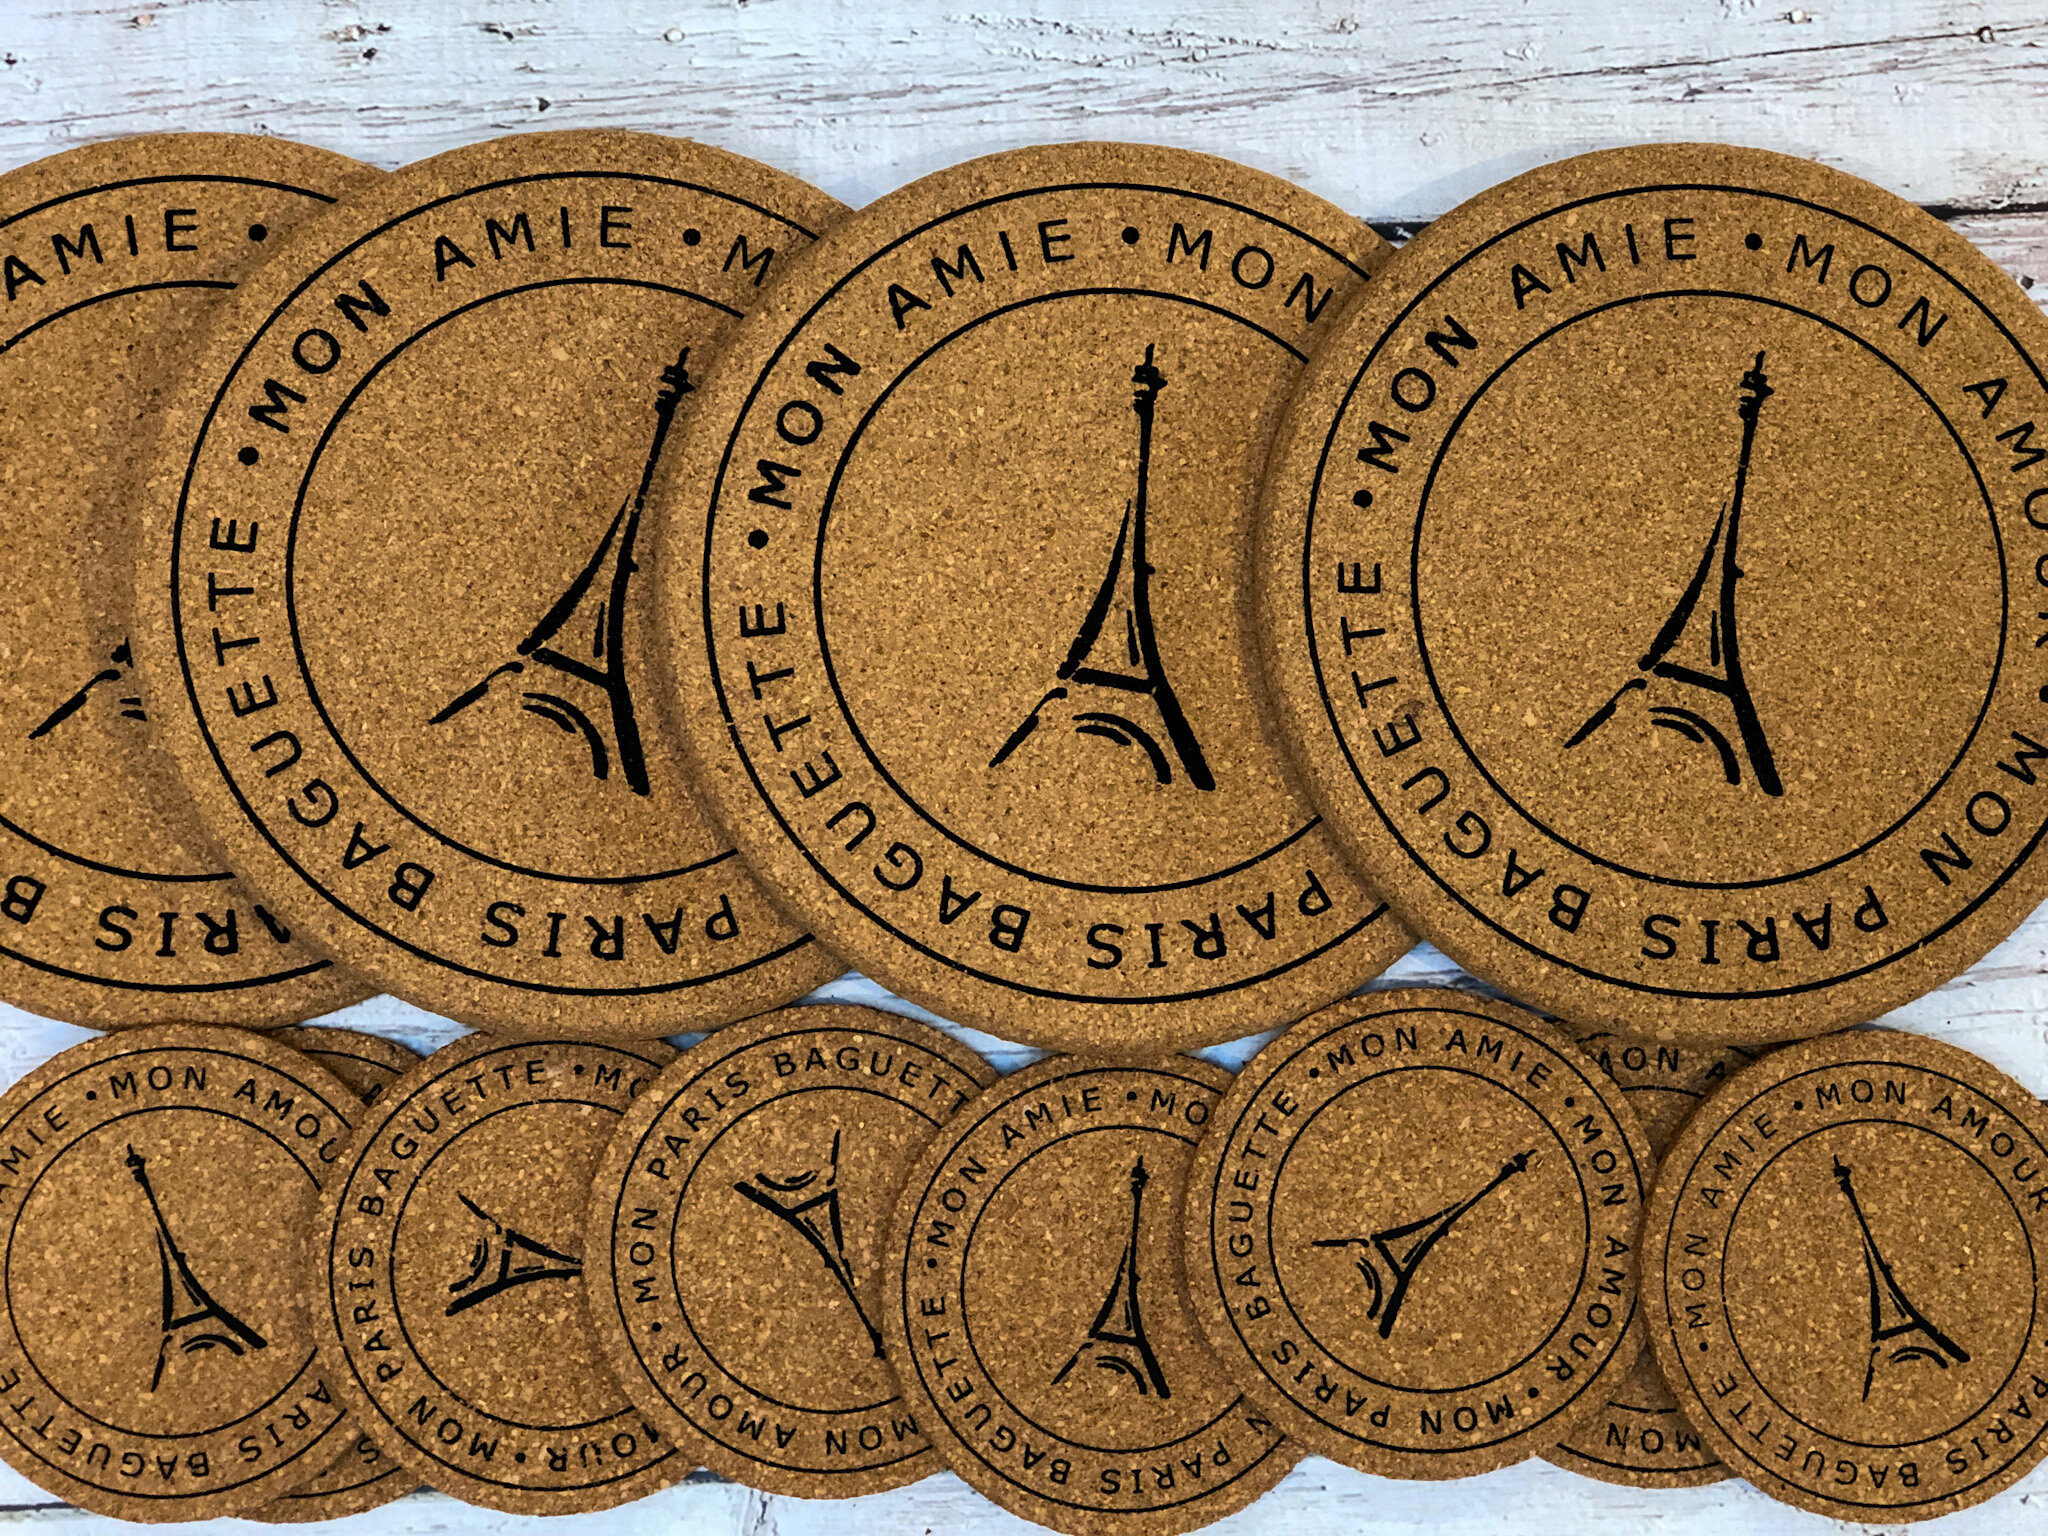 Trivets & Coasters, some of the Best Gifts for Foodies.